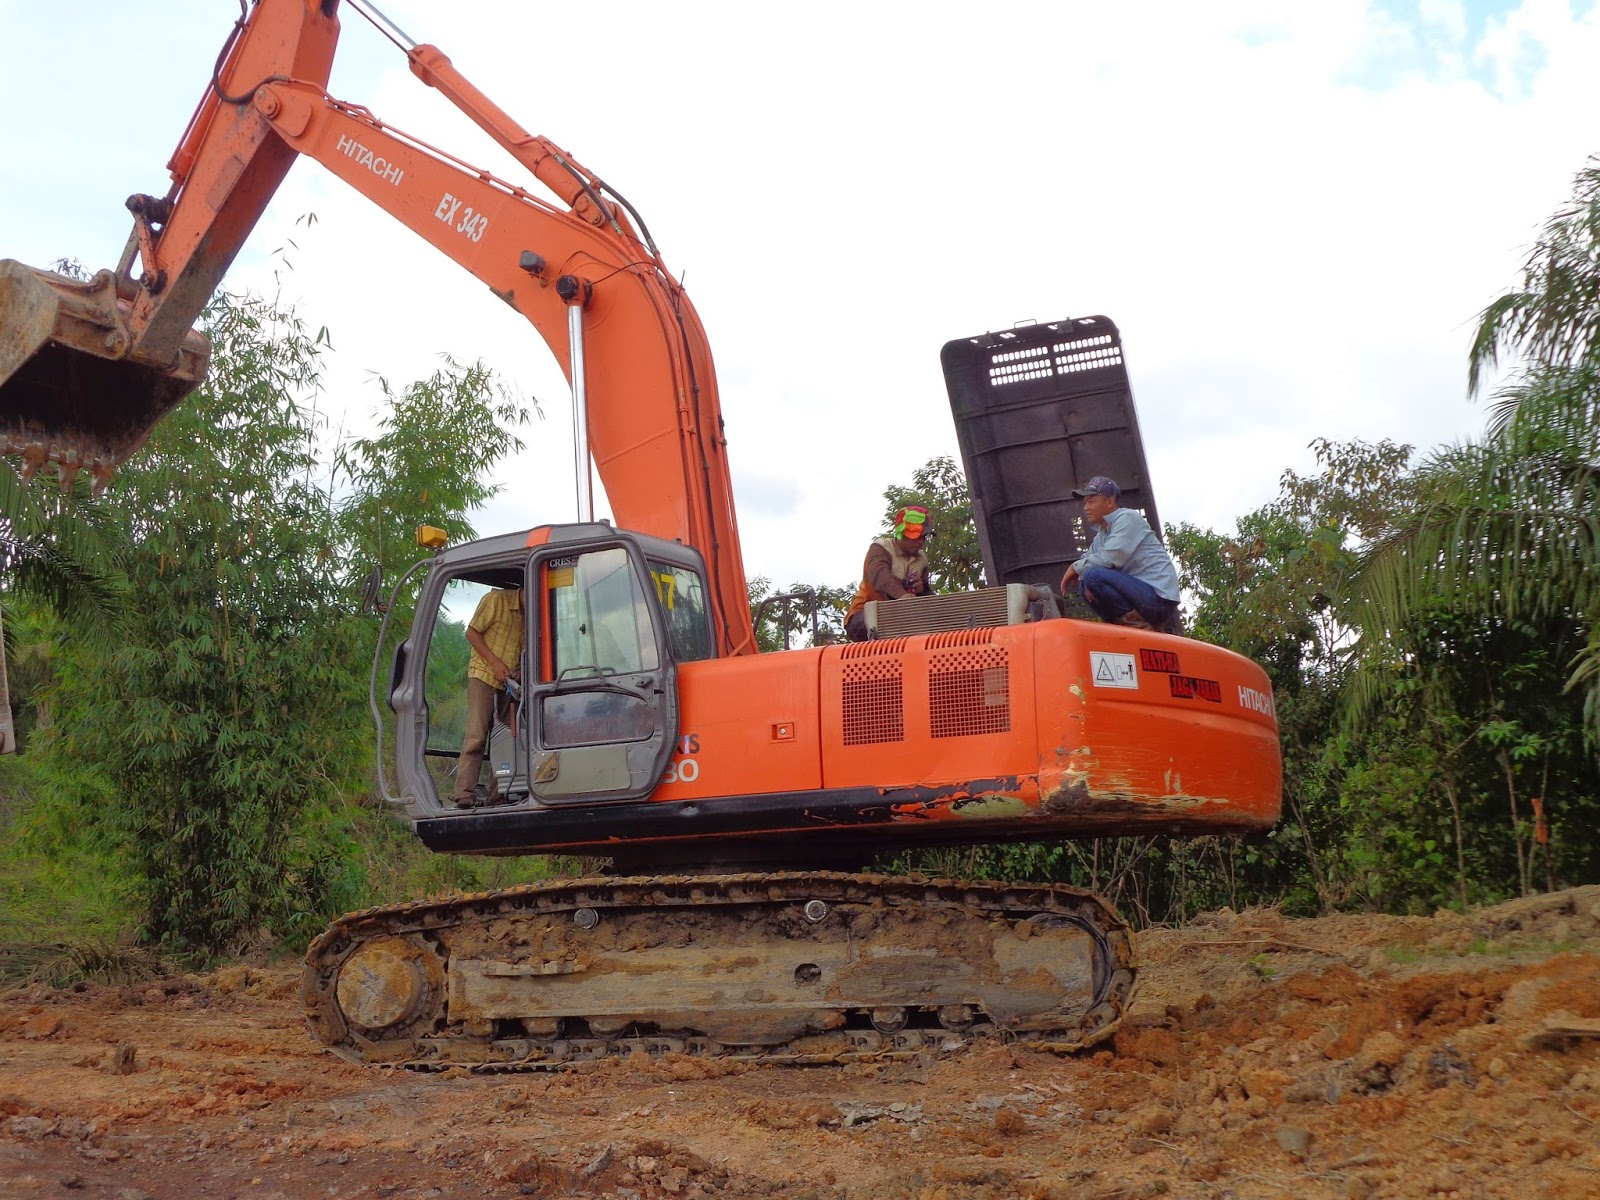 Preventing exposure to hot radiator waters excavator